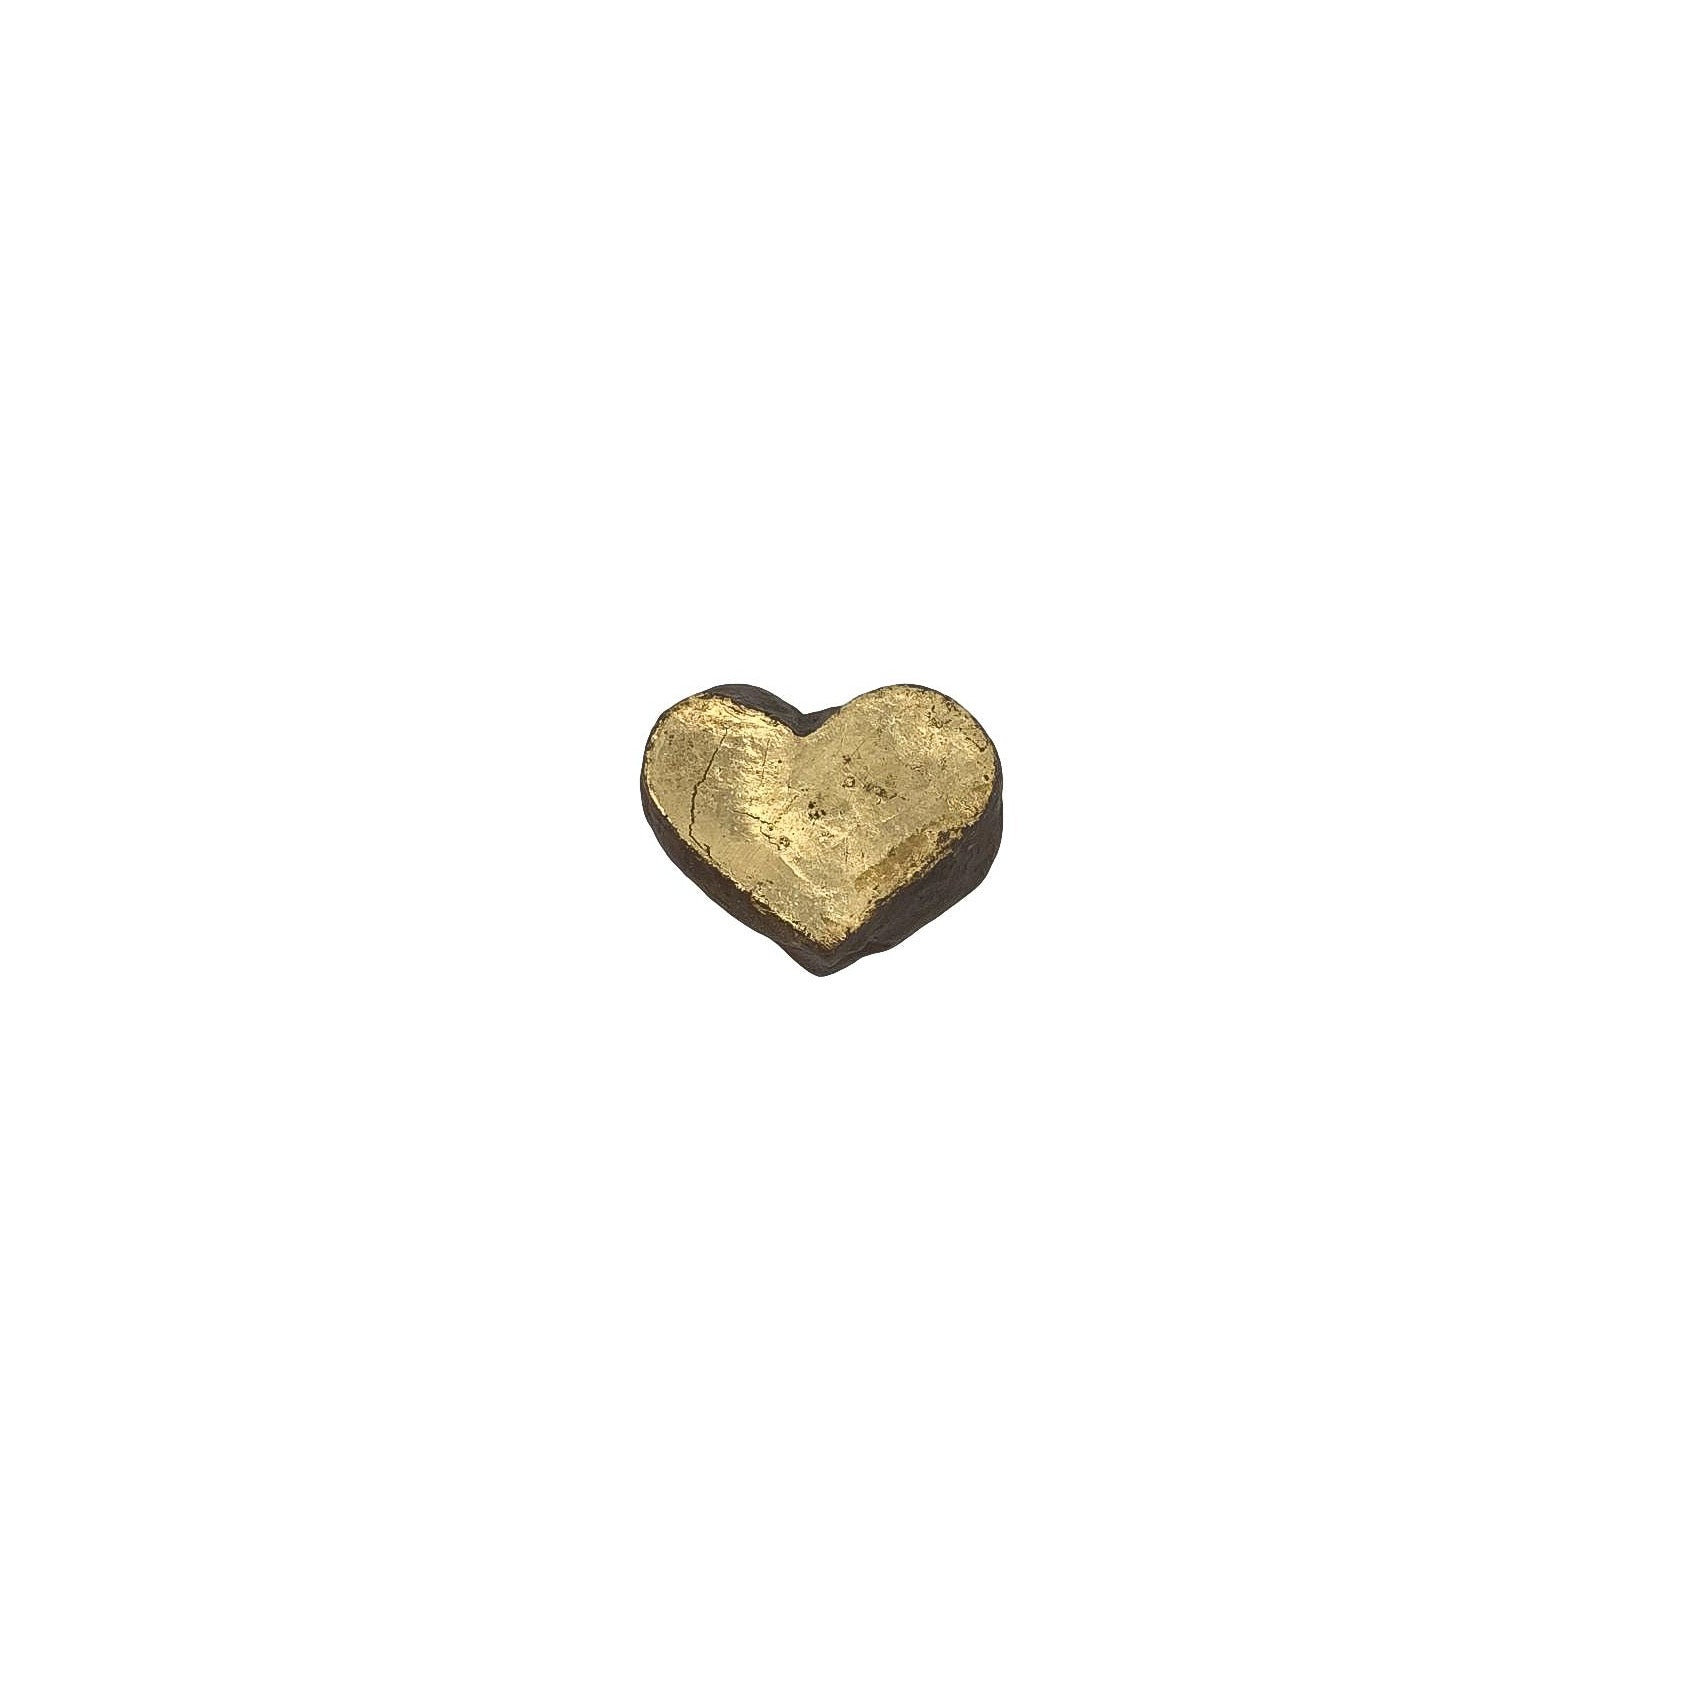 Gold Leaf Heart *more colors available*